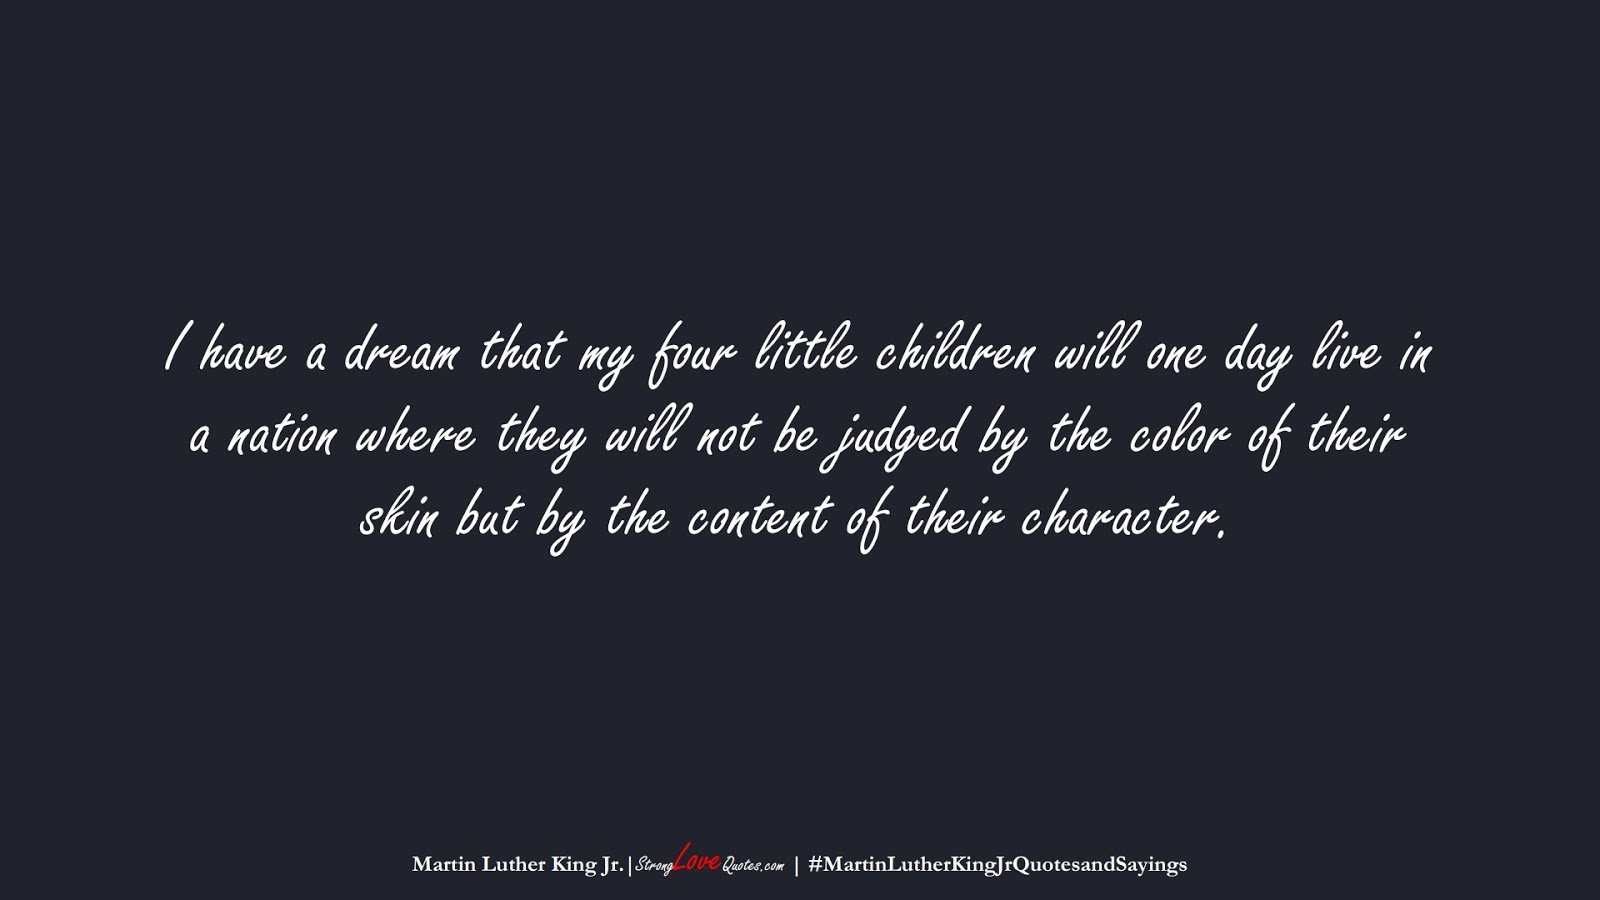 I have a dream that my four little children will one day live in a nation where they will not be judged by the color of their skin but by the content of their character. (Martin Luther King Jr.);  #MartinLutherKingJrQuotesandSayings